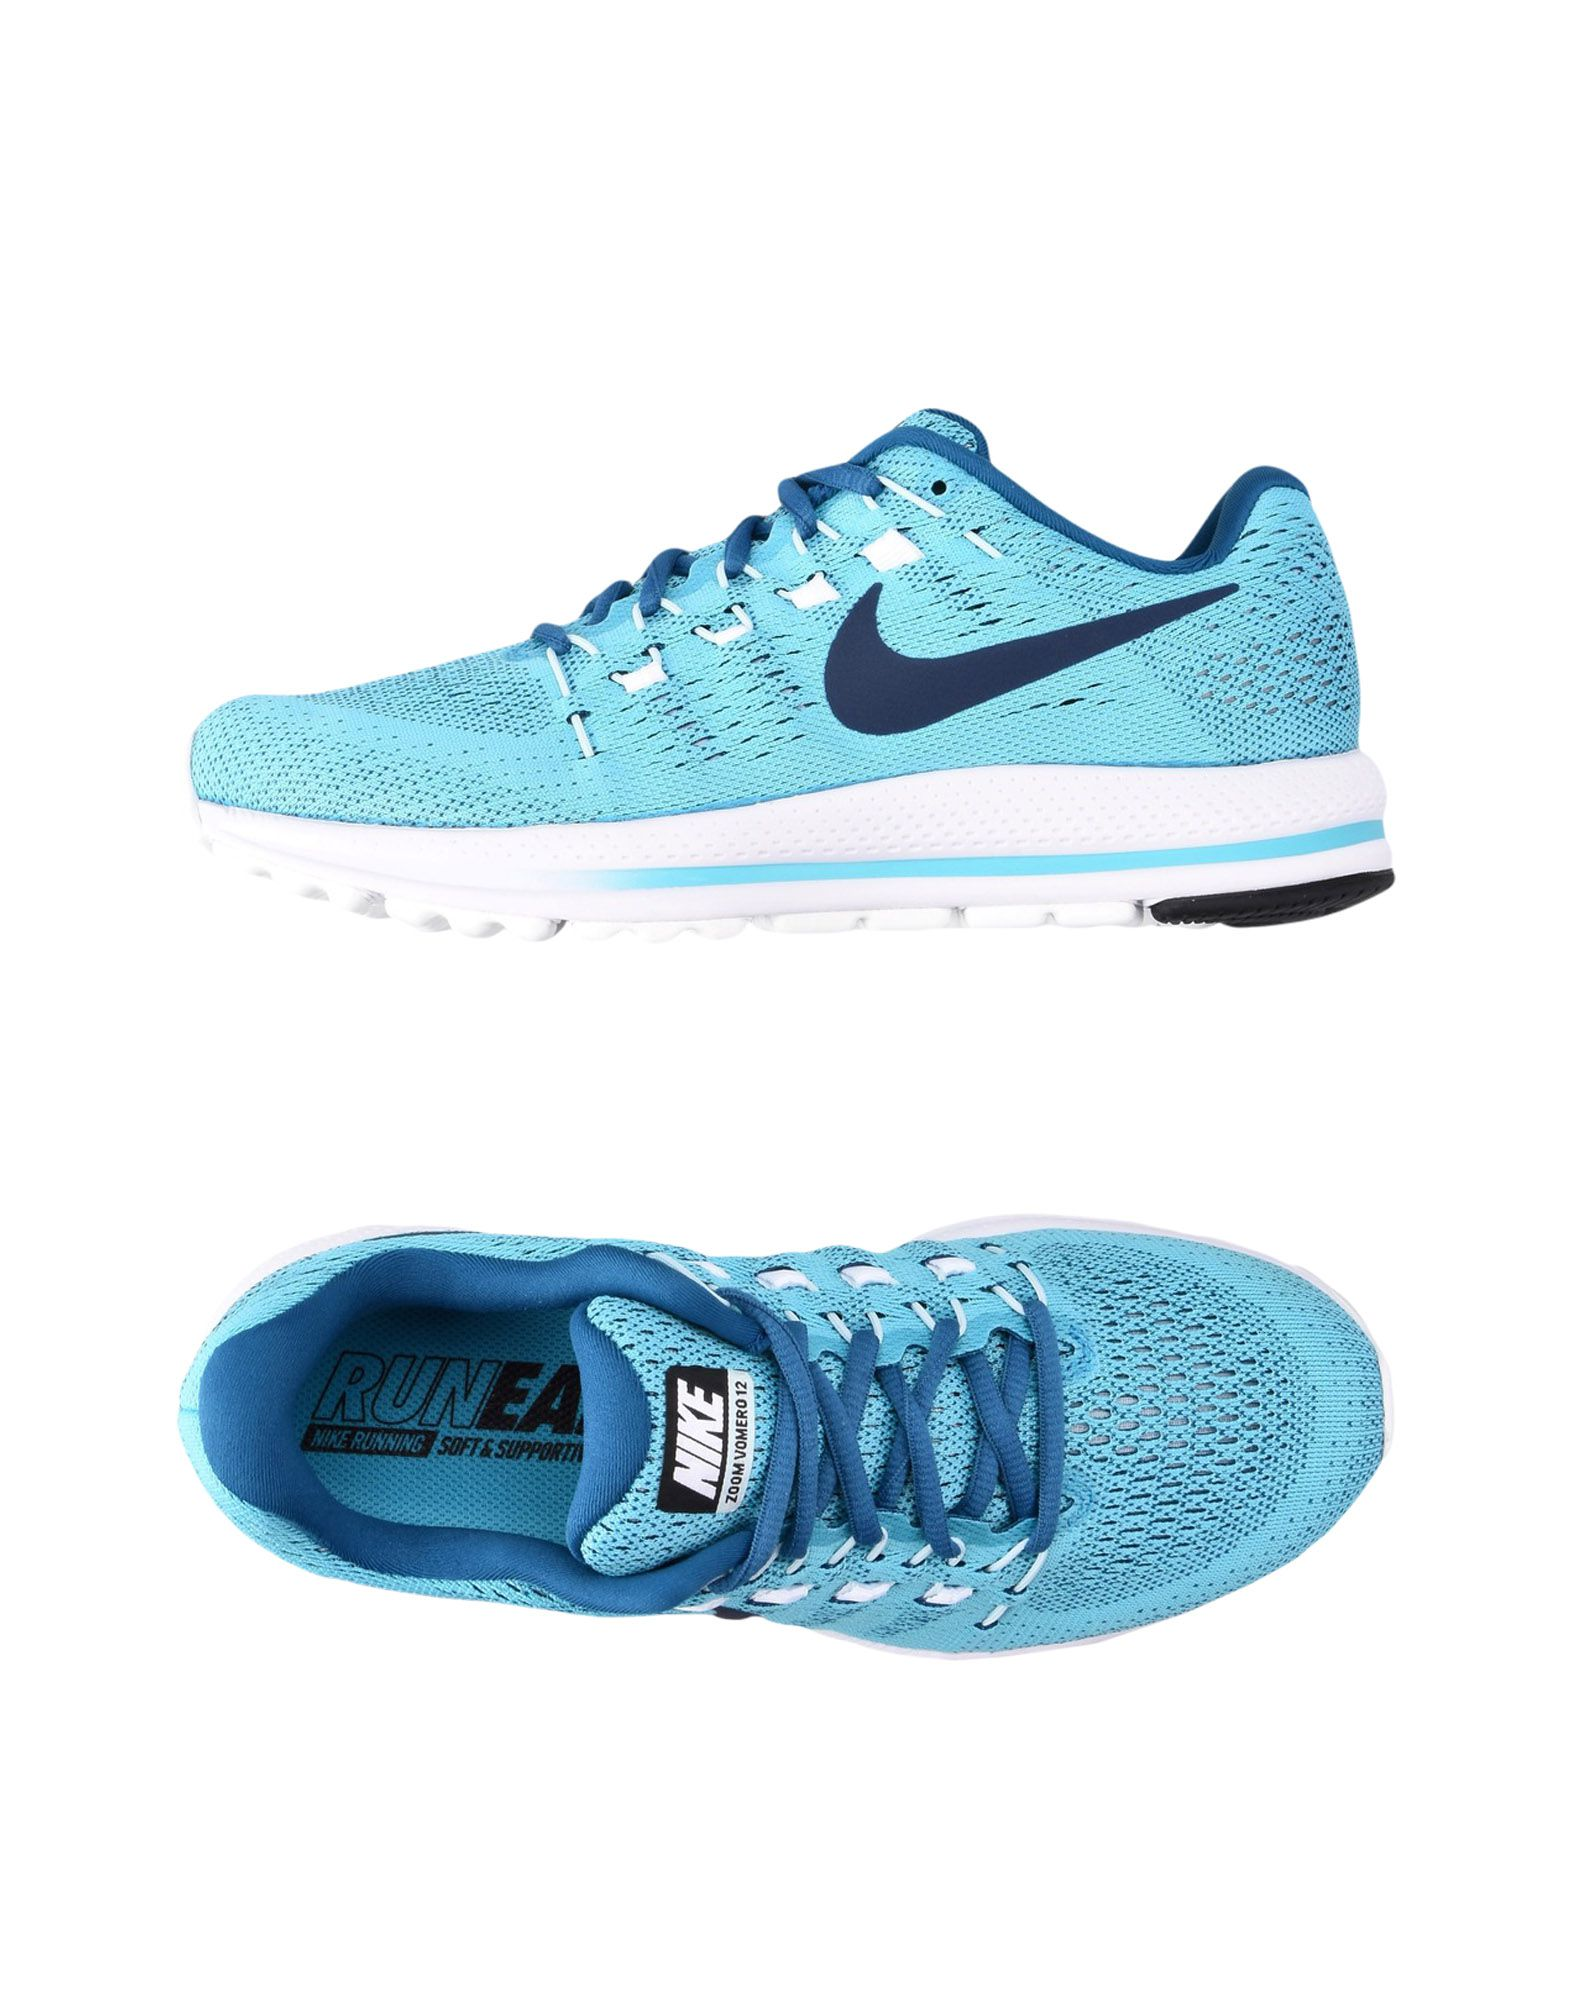 Sneakers Nike  Air Zoom Vomero 12 - Homme - Sneakers Nike  Turquoise Remise de marque